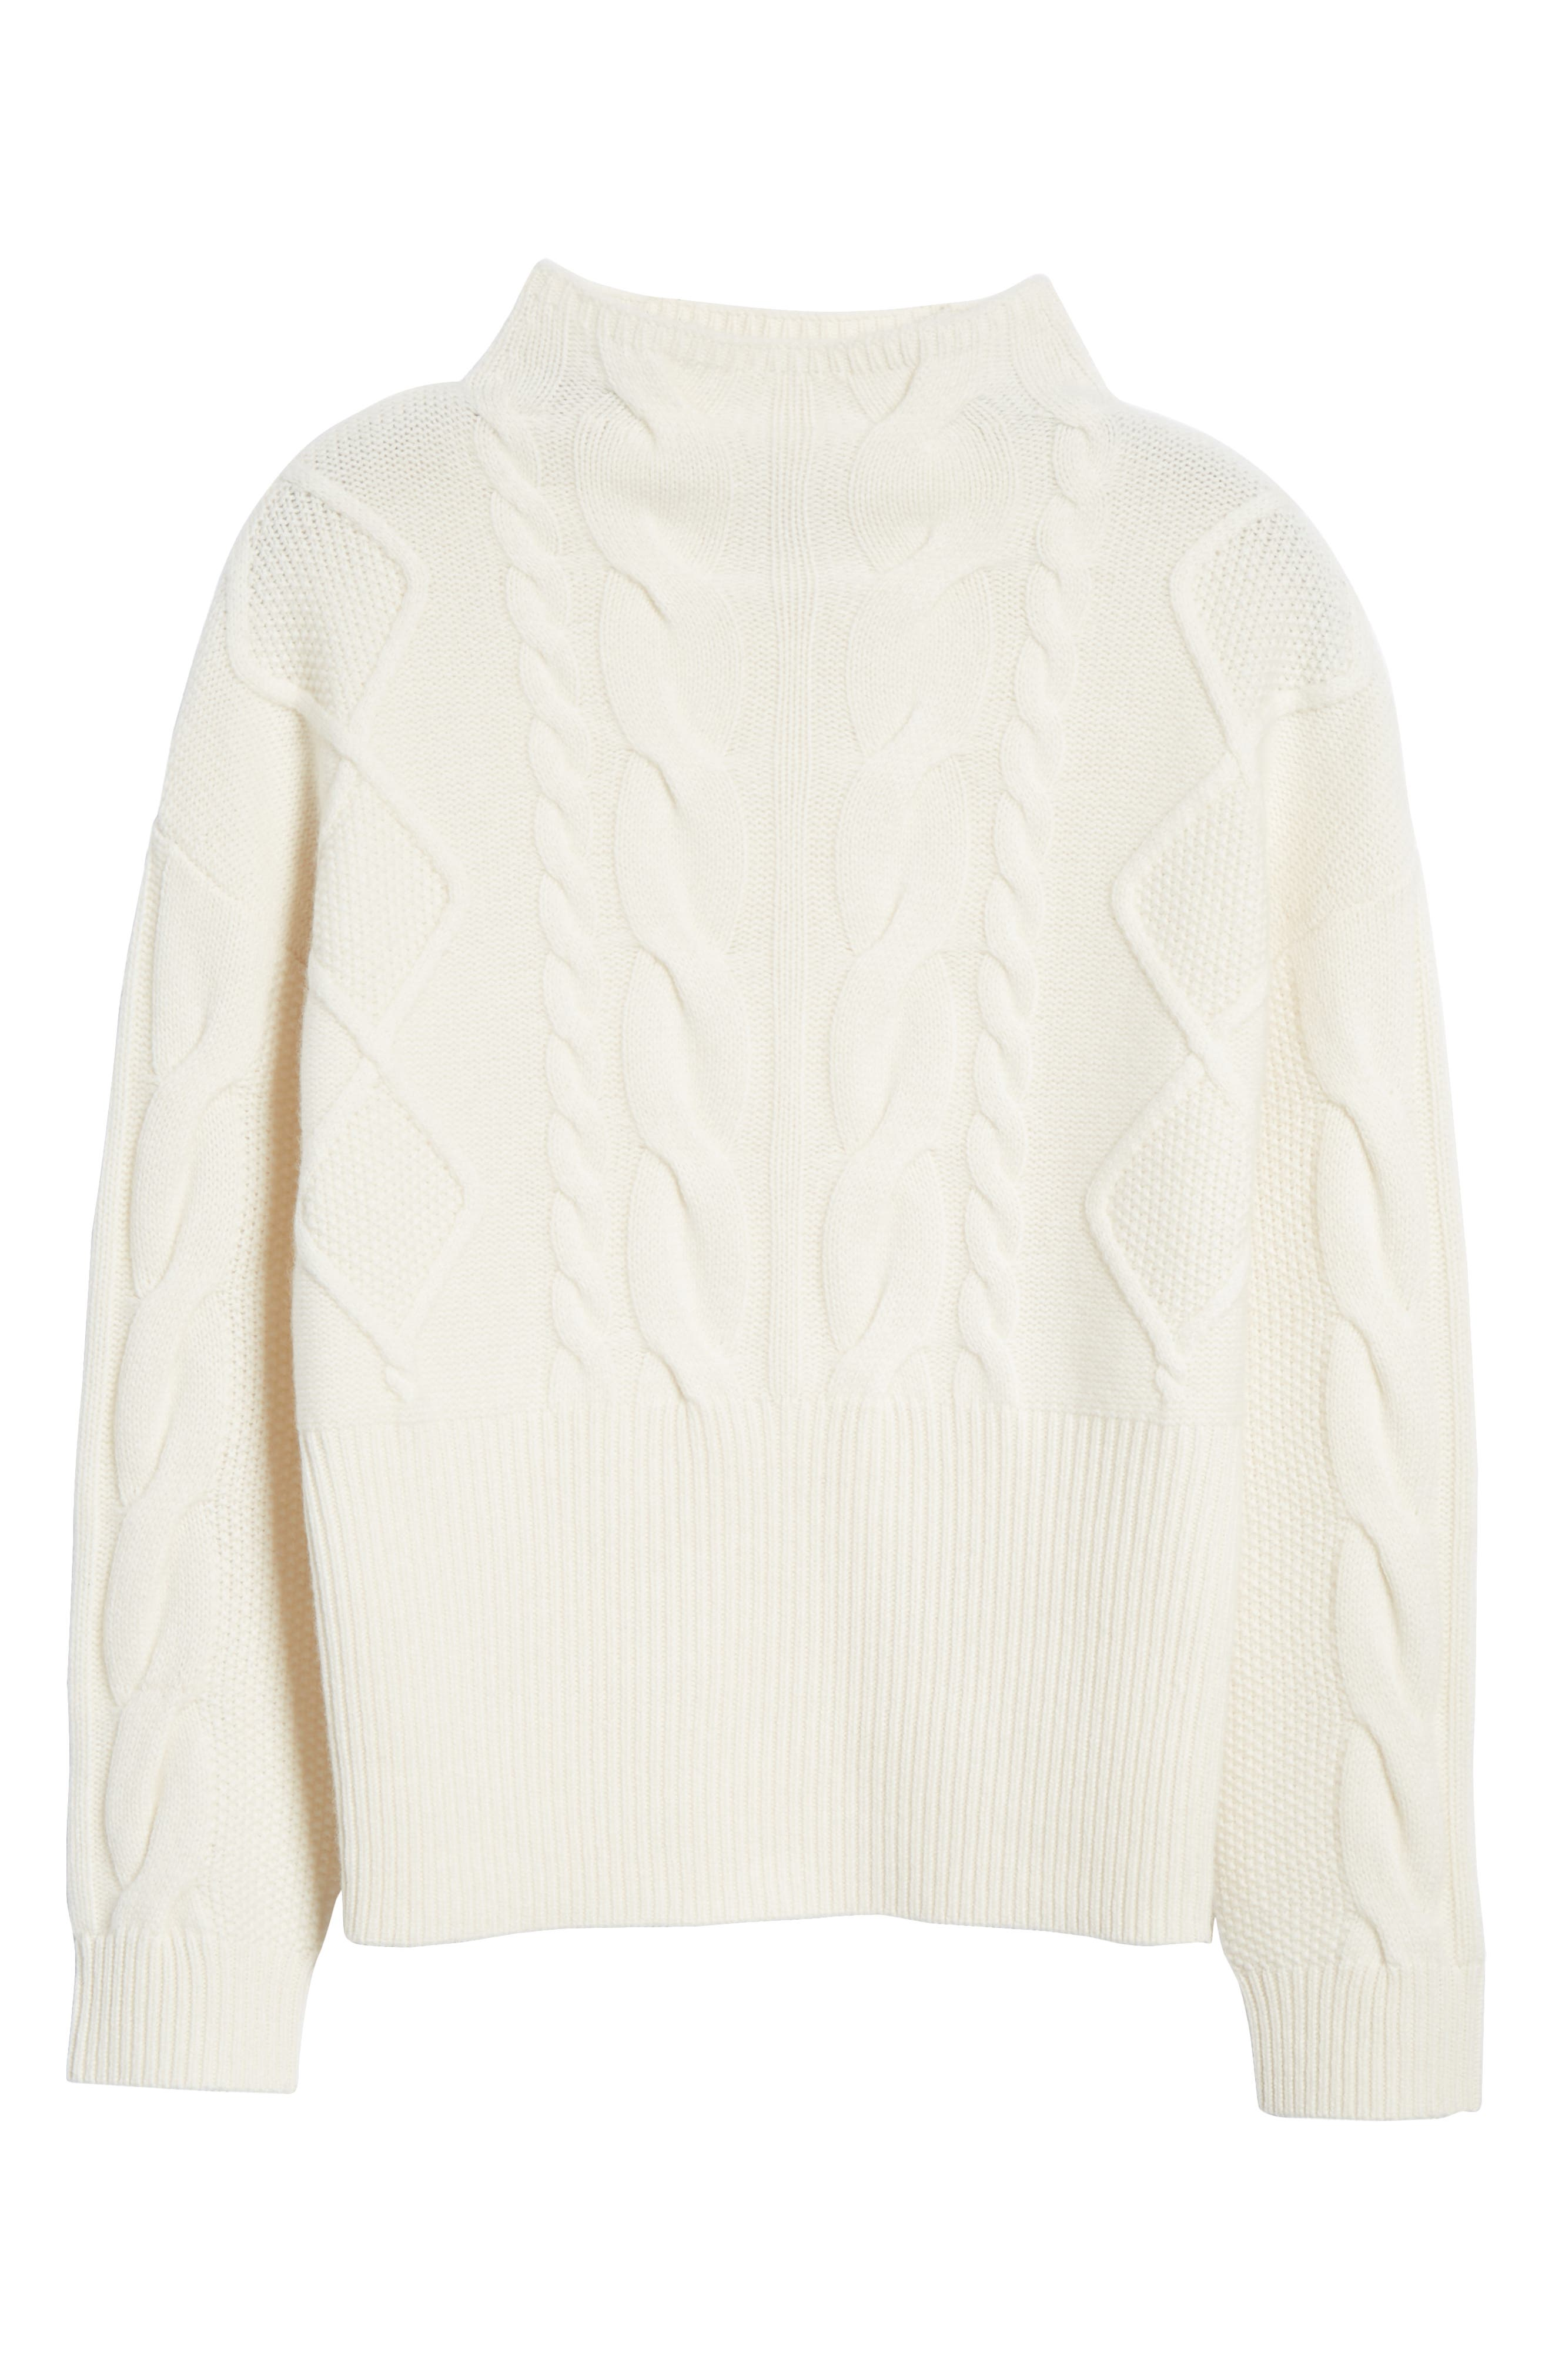 NORDSTROM SIGNATURE, Cable Cashmere Sweater, Alternate thumbnail 6, color, 900